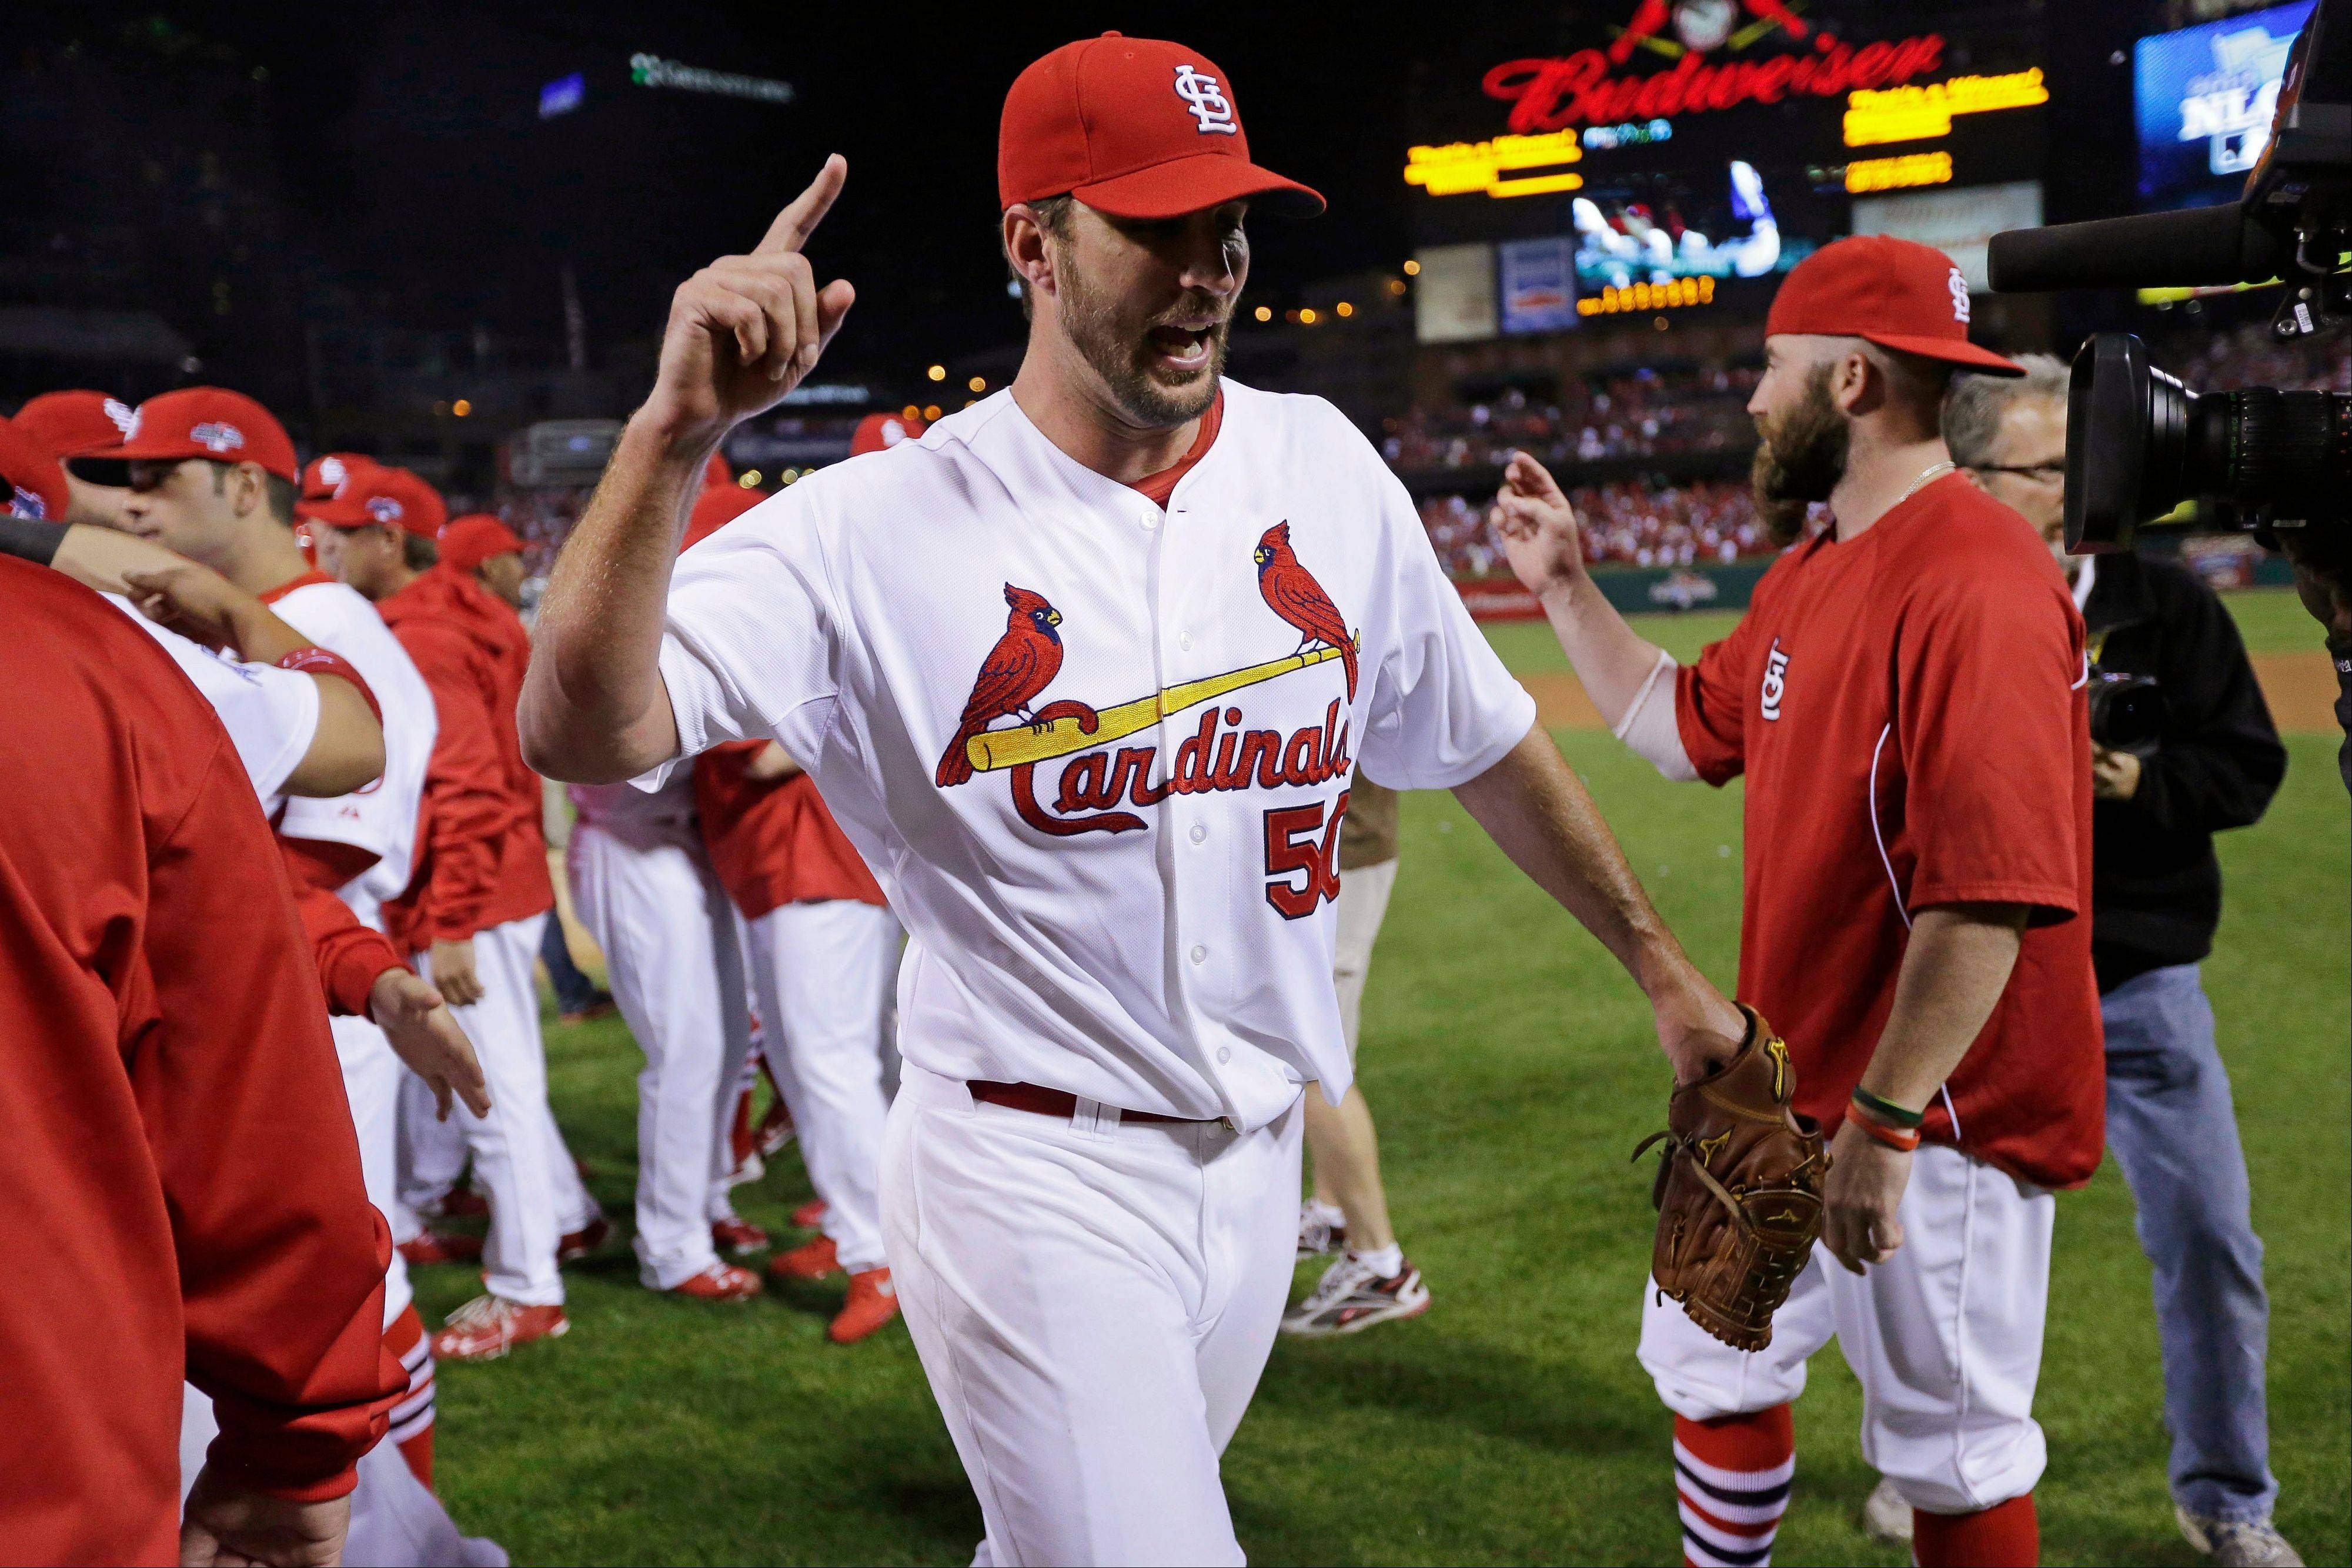 St. Louis Cardinals pitcher Adam Wainwright leaves the field Wednesday after the Cardinals defeated the Pittsburgh Pirates 6-1 in Game 5.